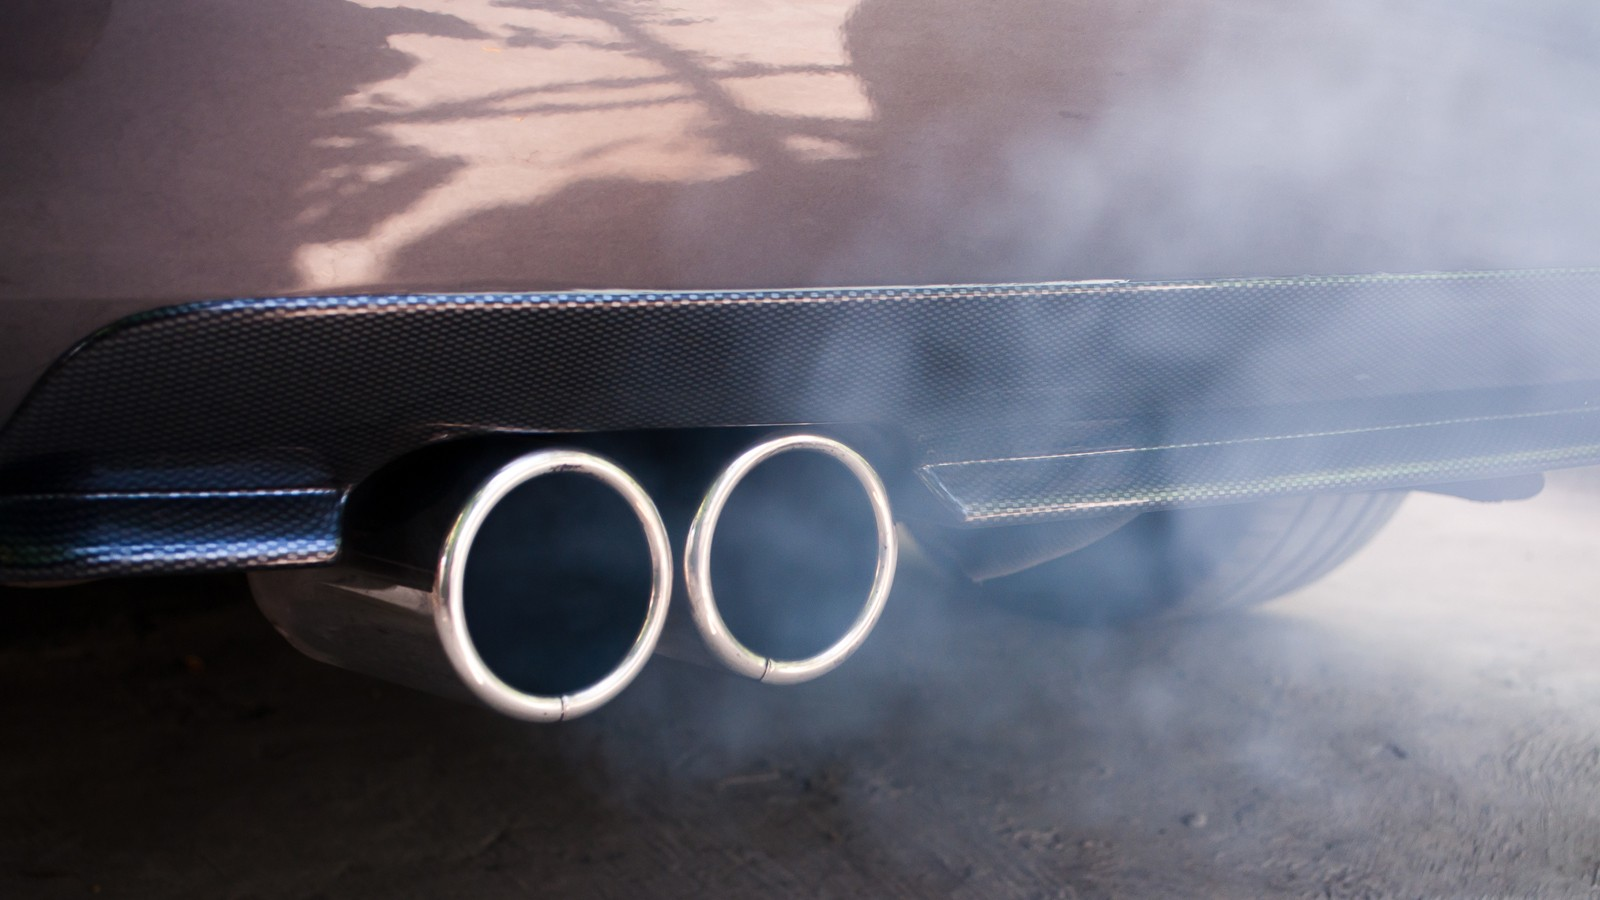 Car exhaust pipe